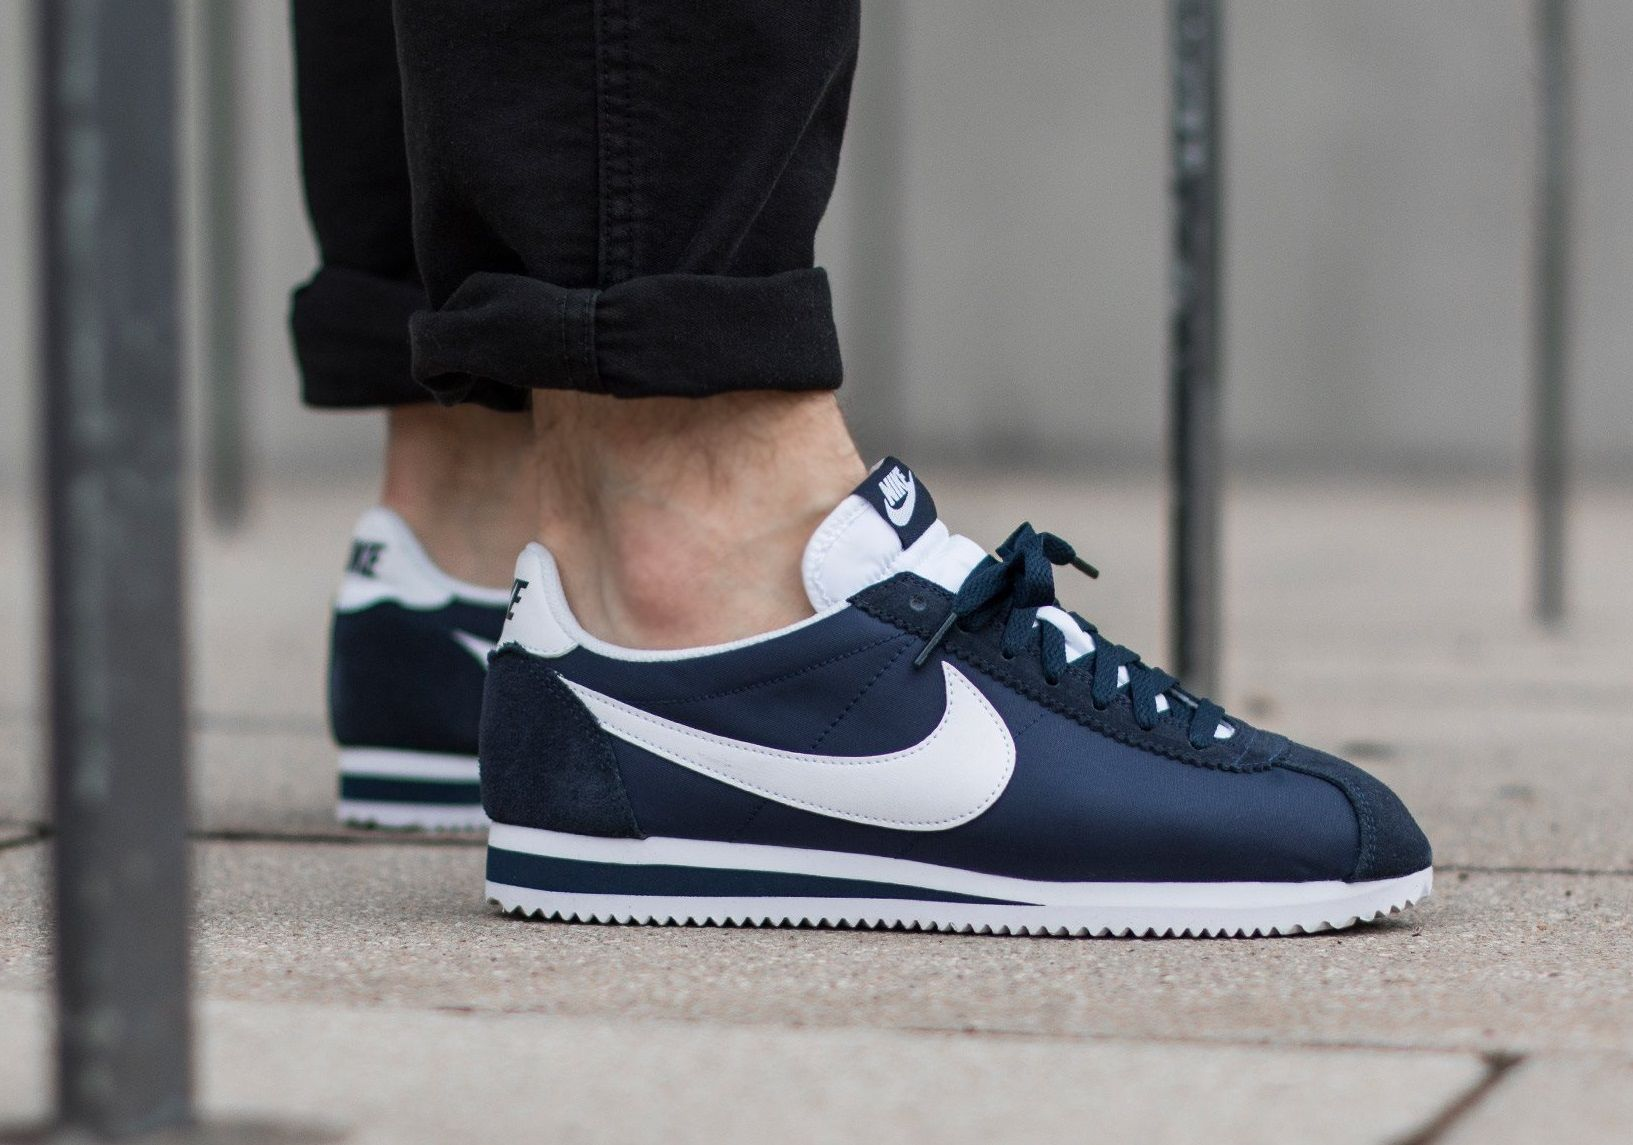 Pin on Sneakers: Nike Cortez